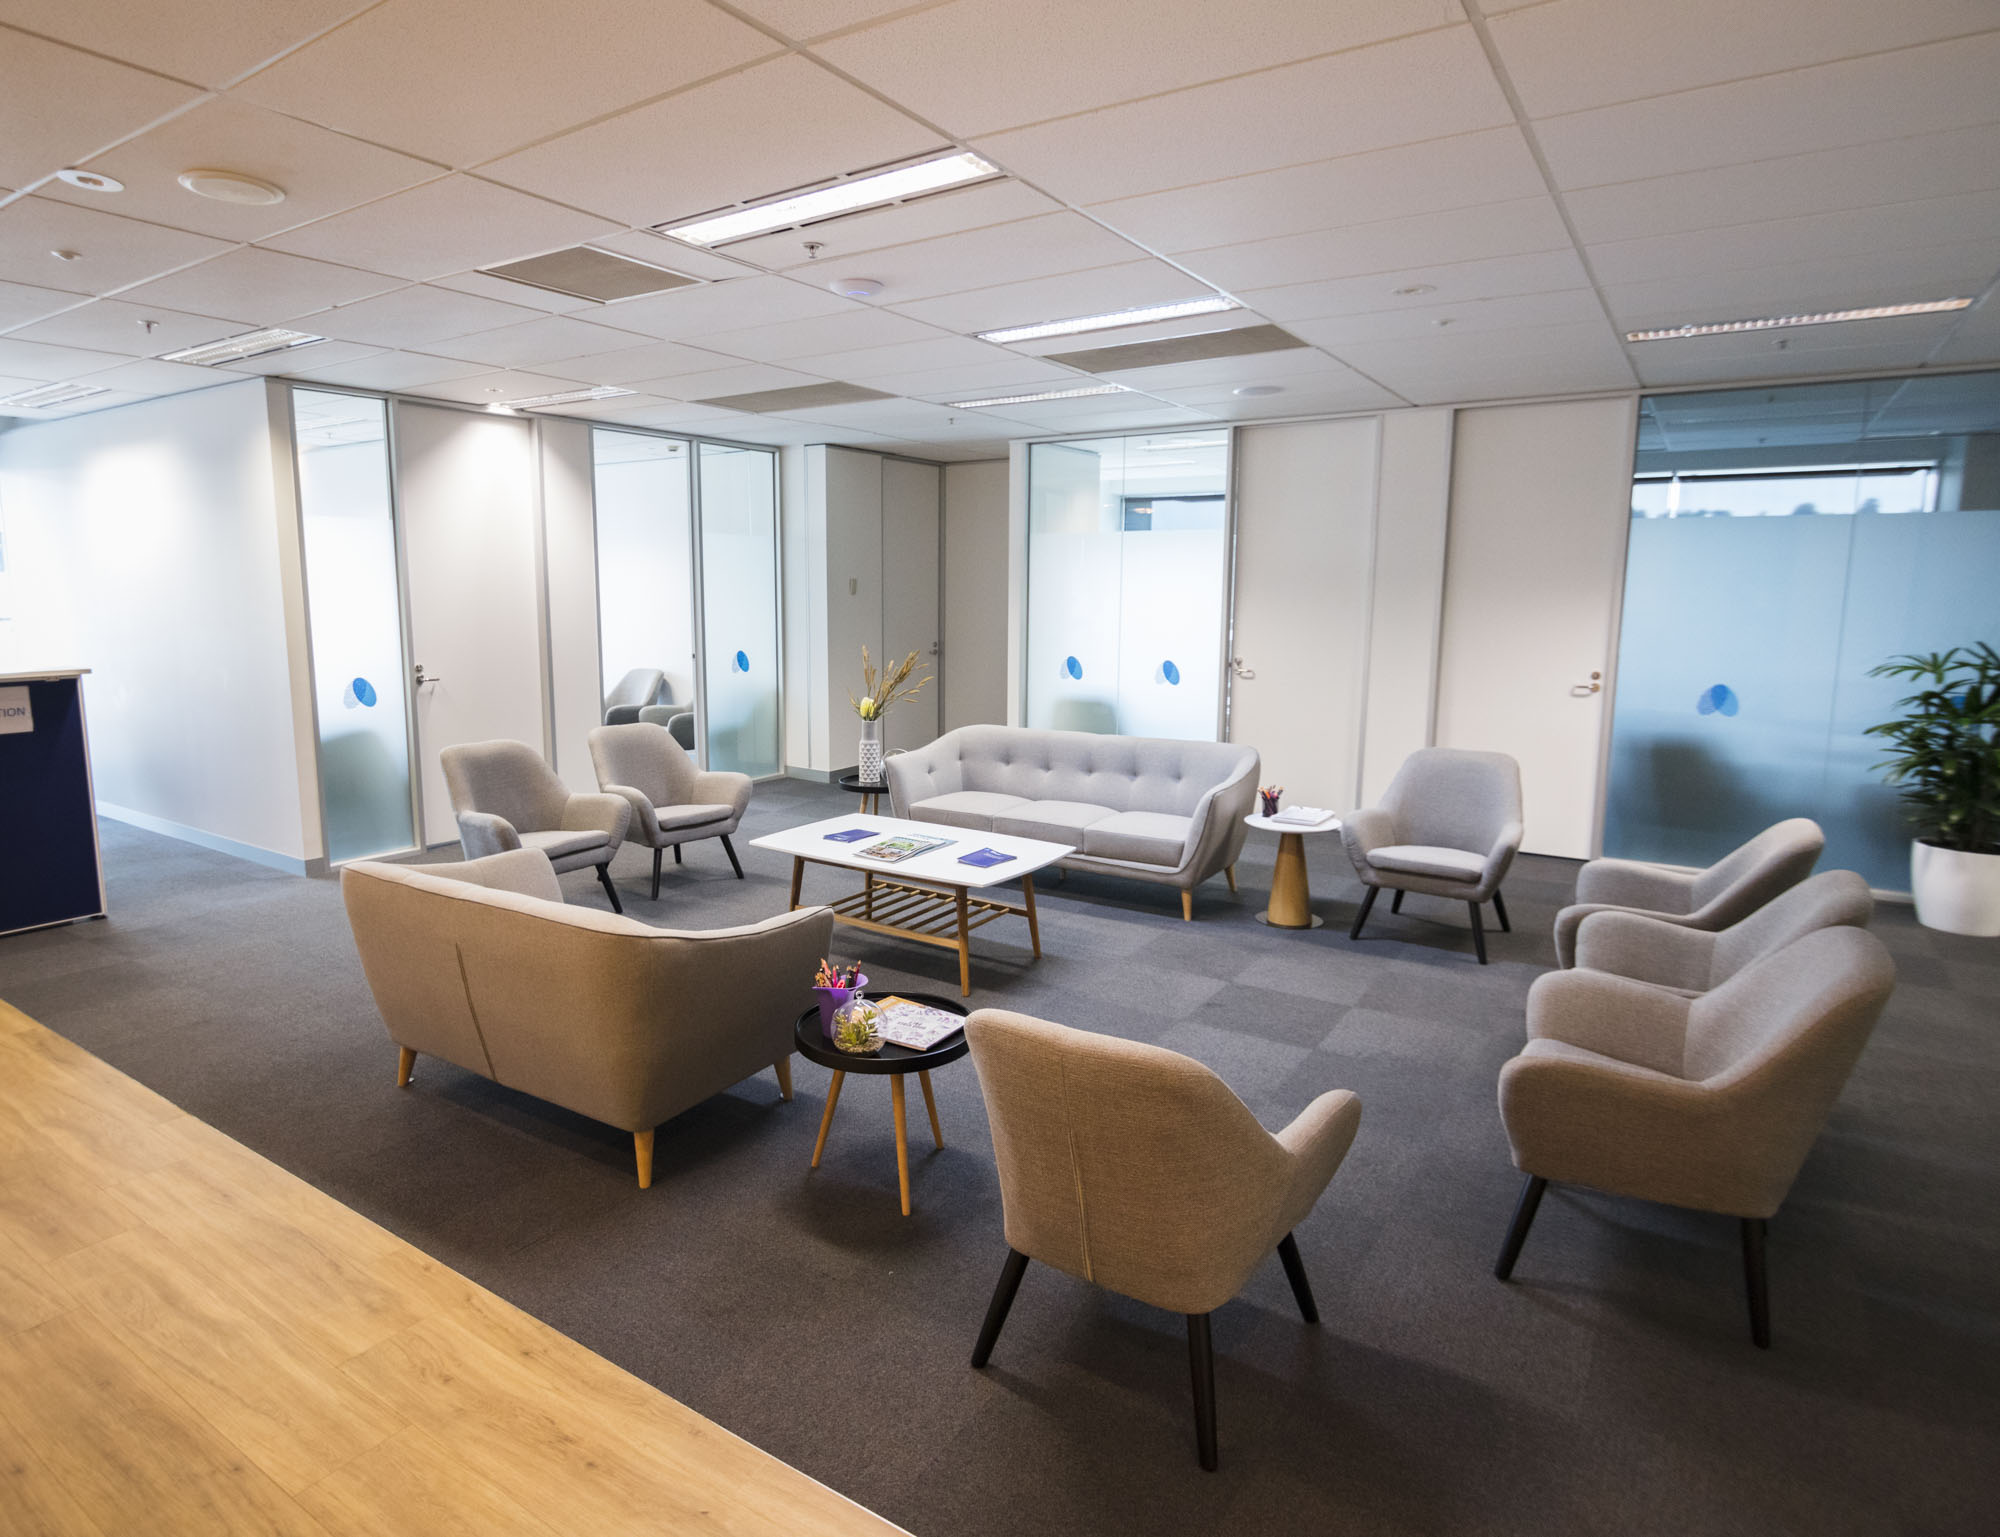 Pain Specialists Australia - Consulting Rooms Lounge 1.3.jpg